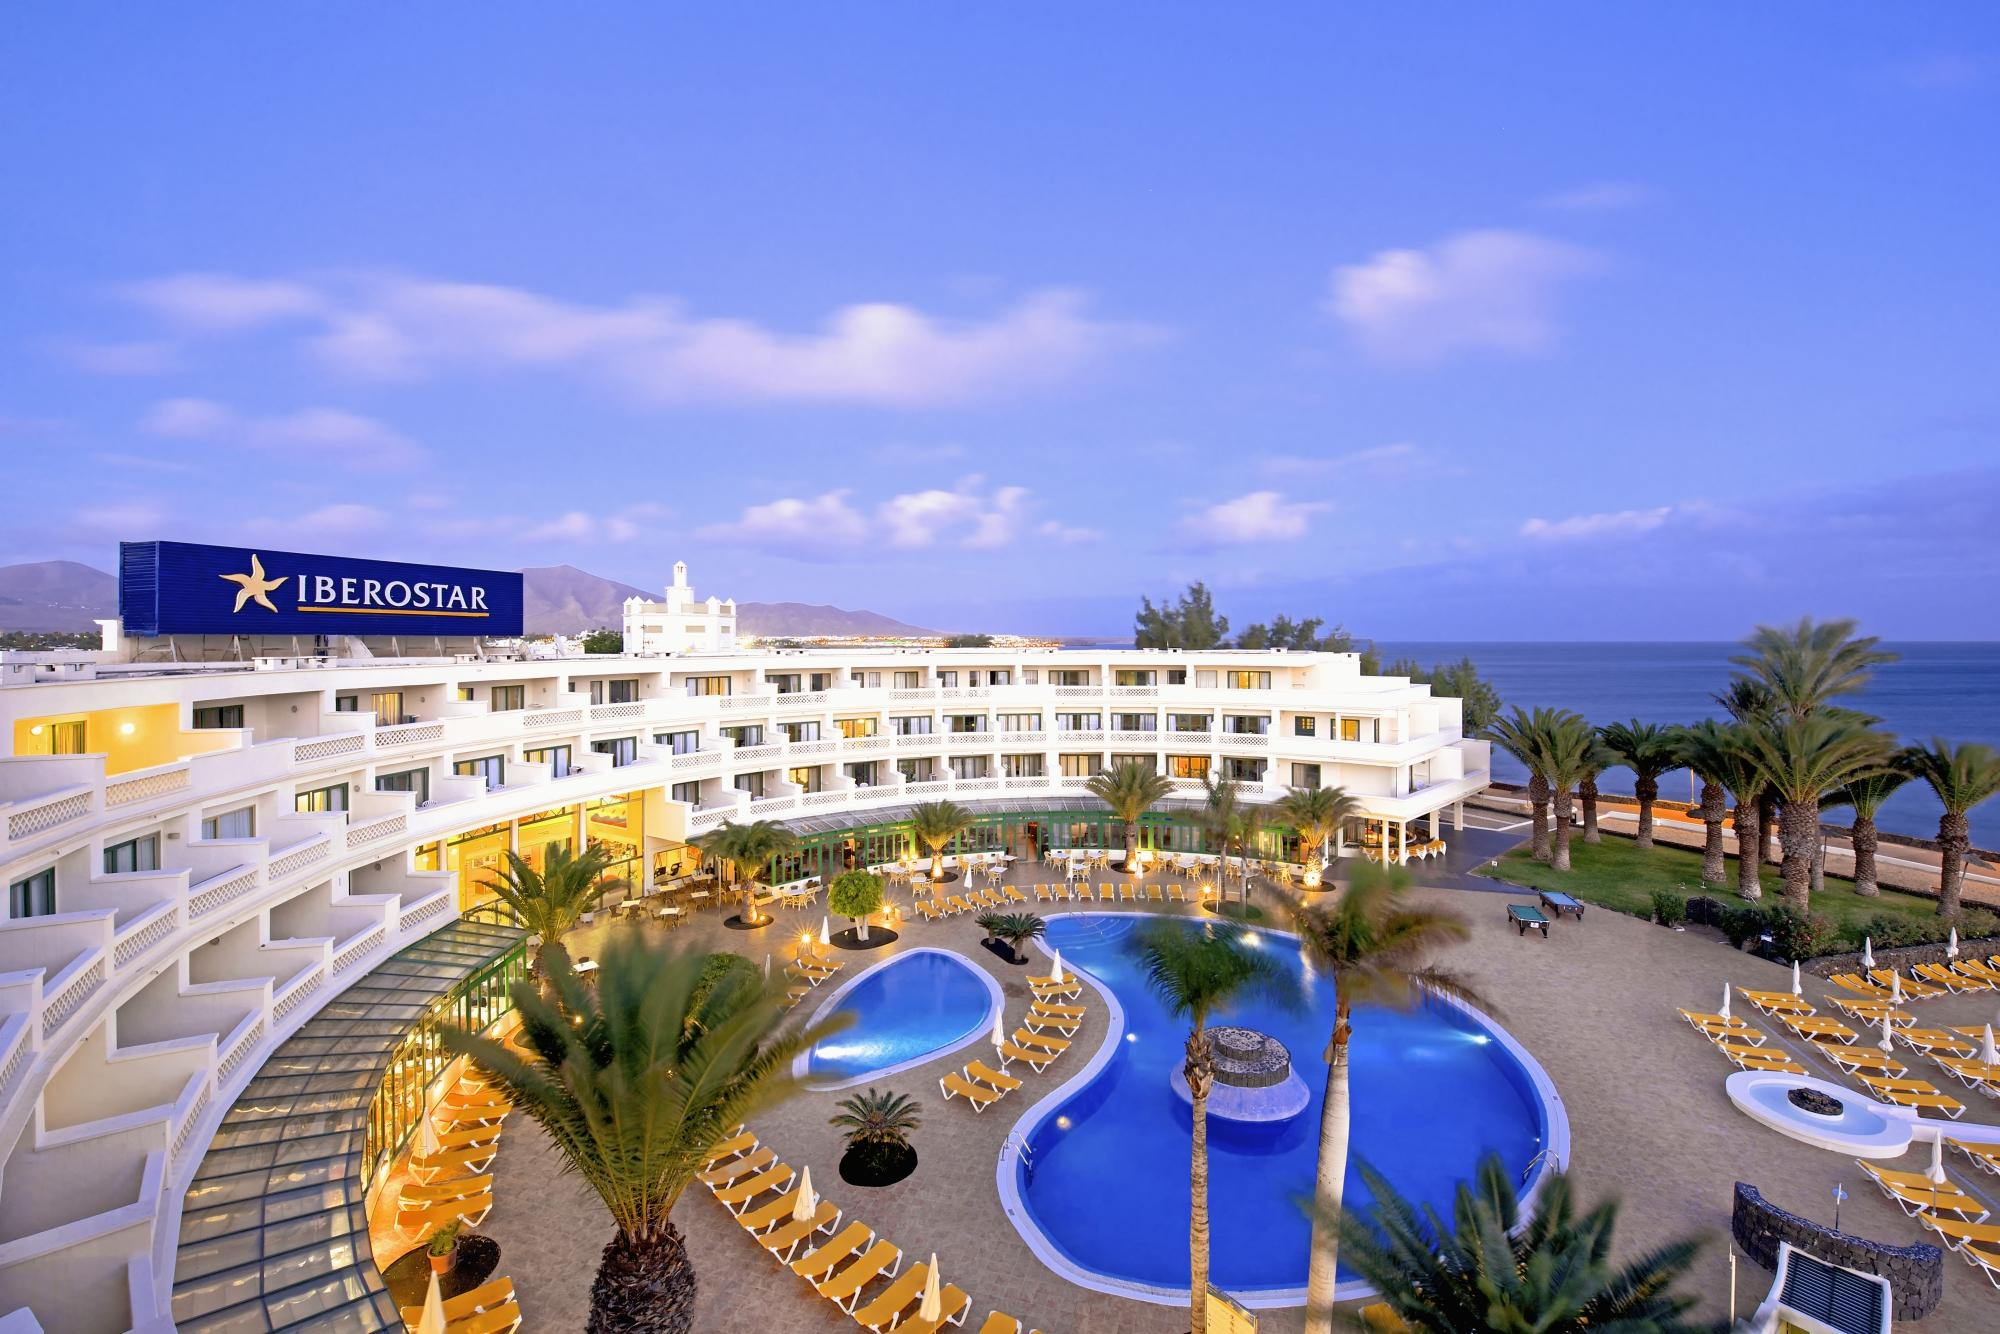 Iberostar to offer Sustainable Luxury in Mallorca